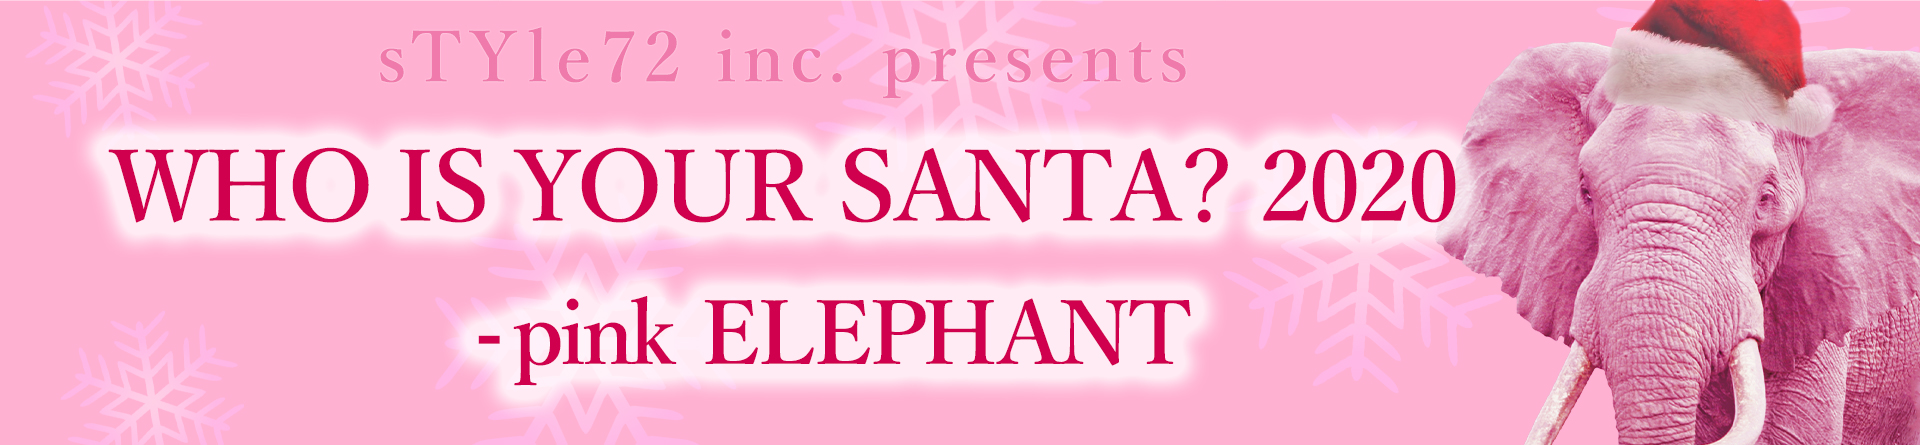 sTYle72 inc. presents WHO IS YOUR SANTA? 2020 -pink ELEPHANT